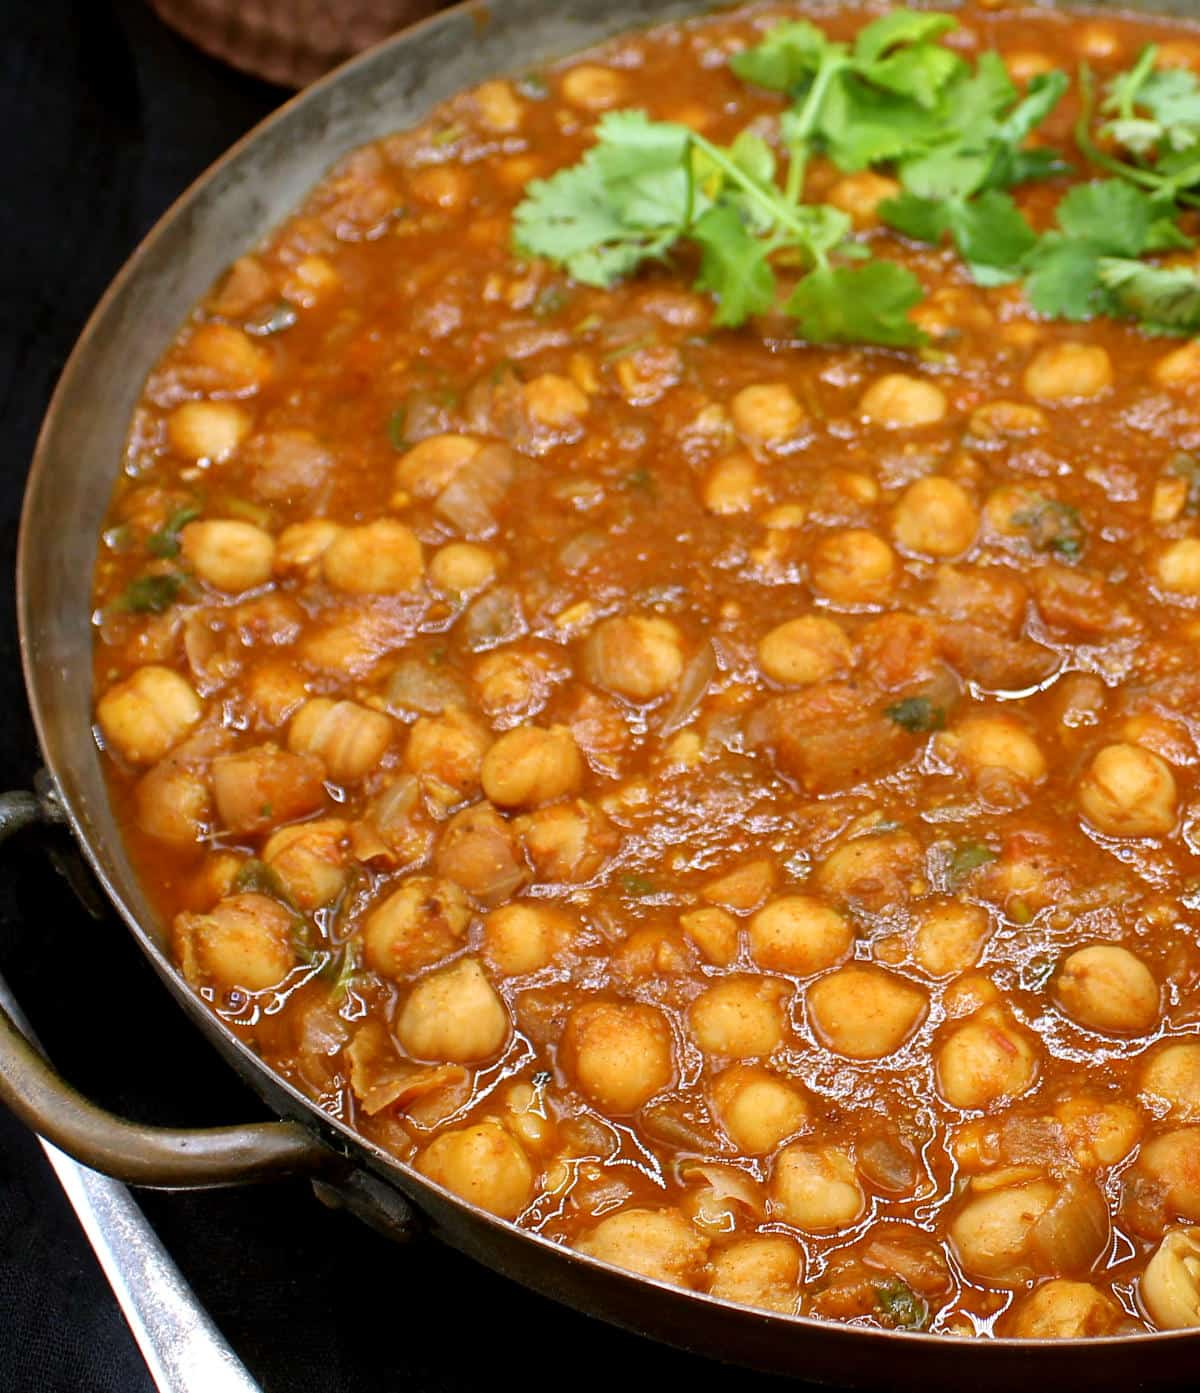 Partial closeup of Indian chana masala in a copper pot with cilantro garnish.